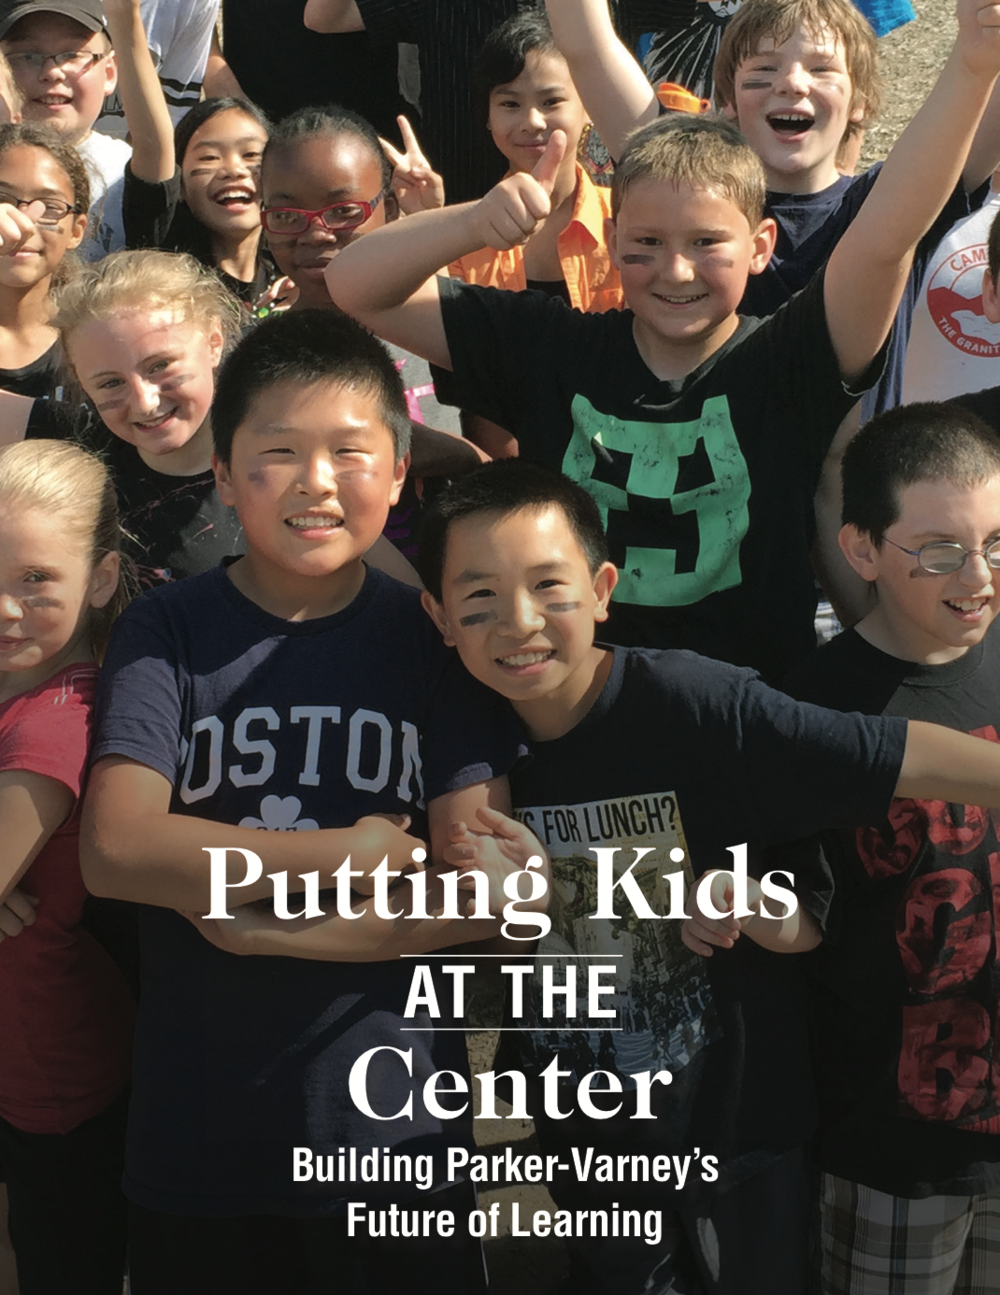 putting kids at the center: building parker varney's future of learning, november 2015